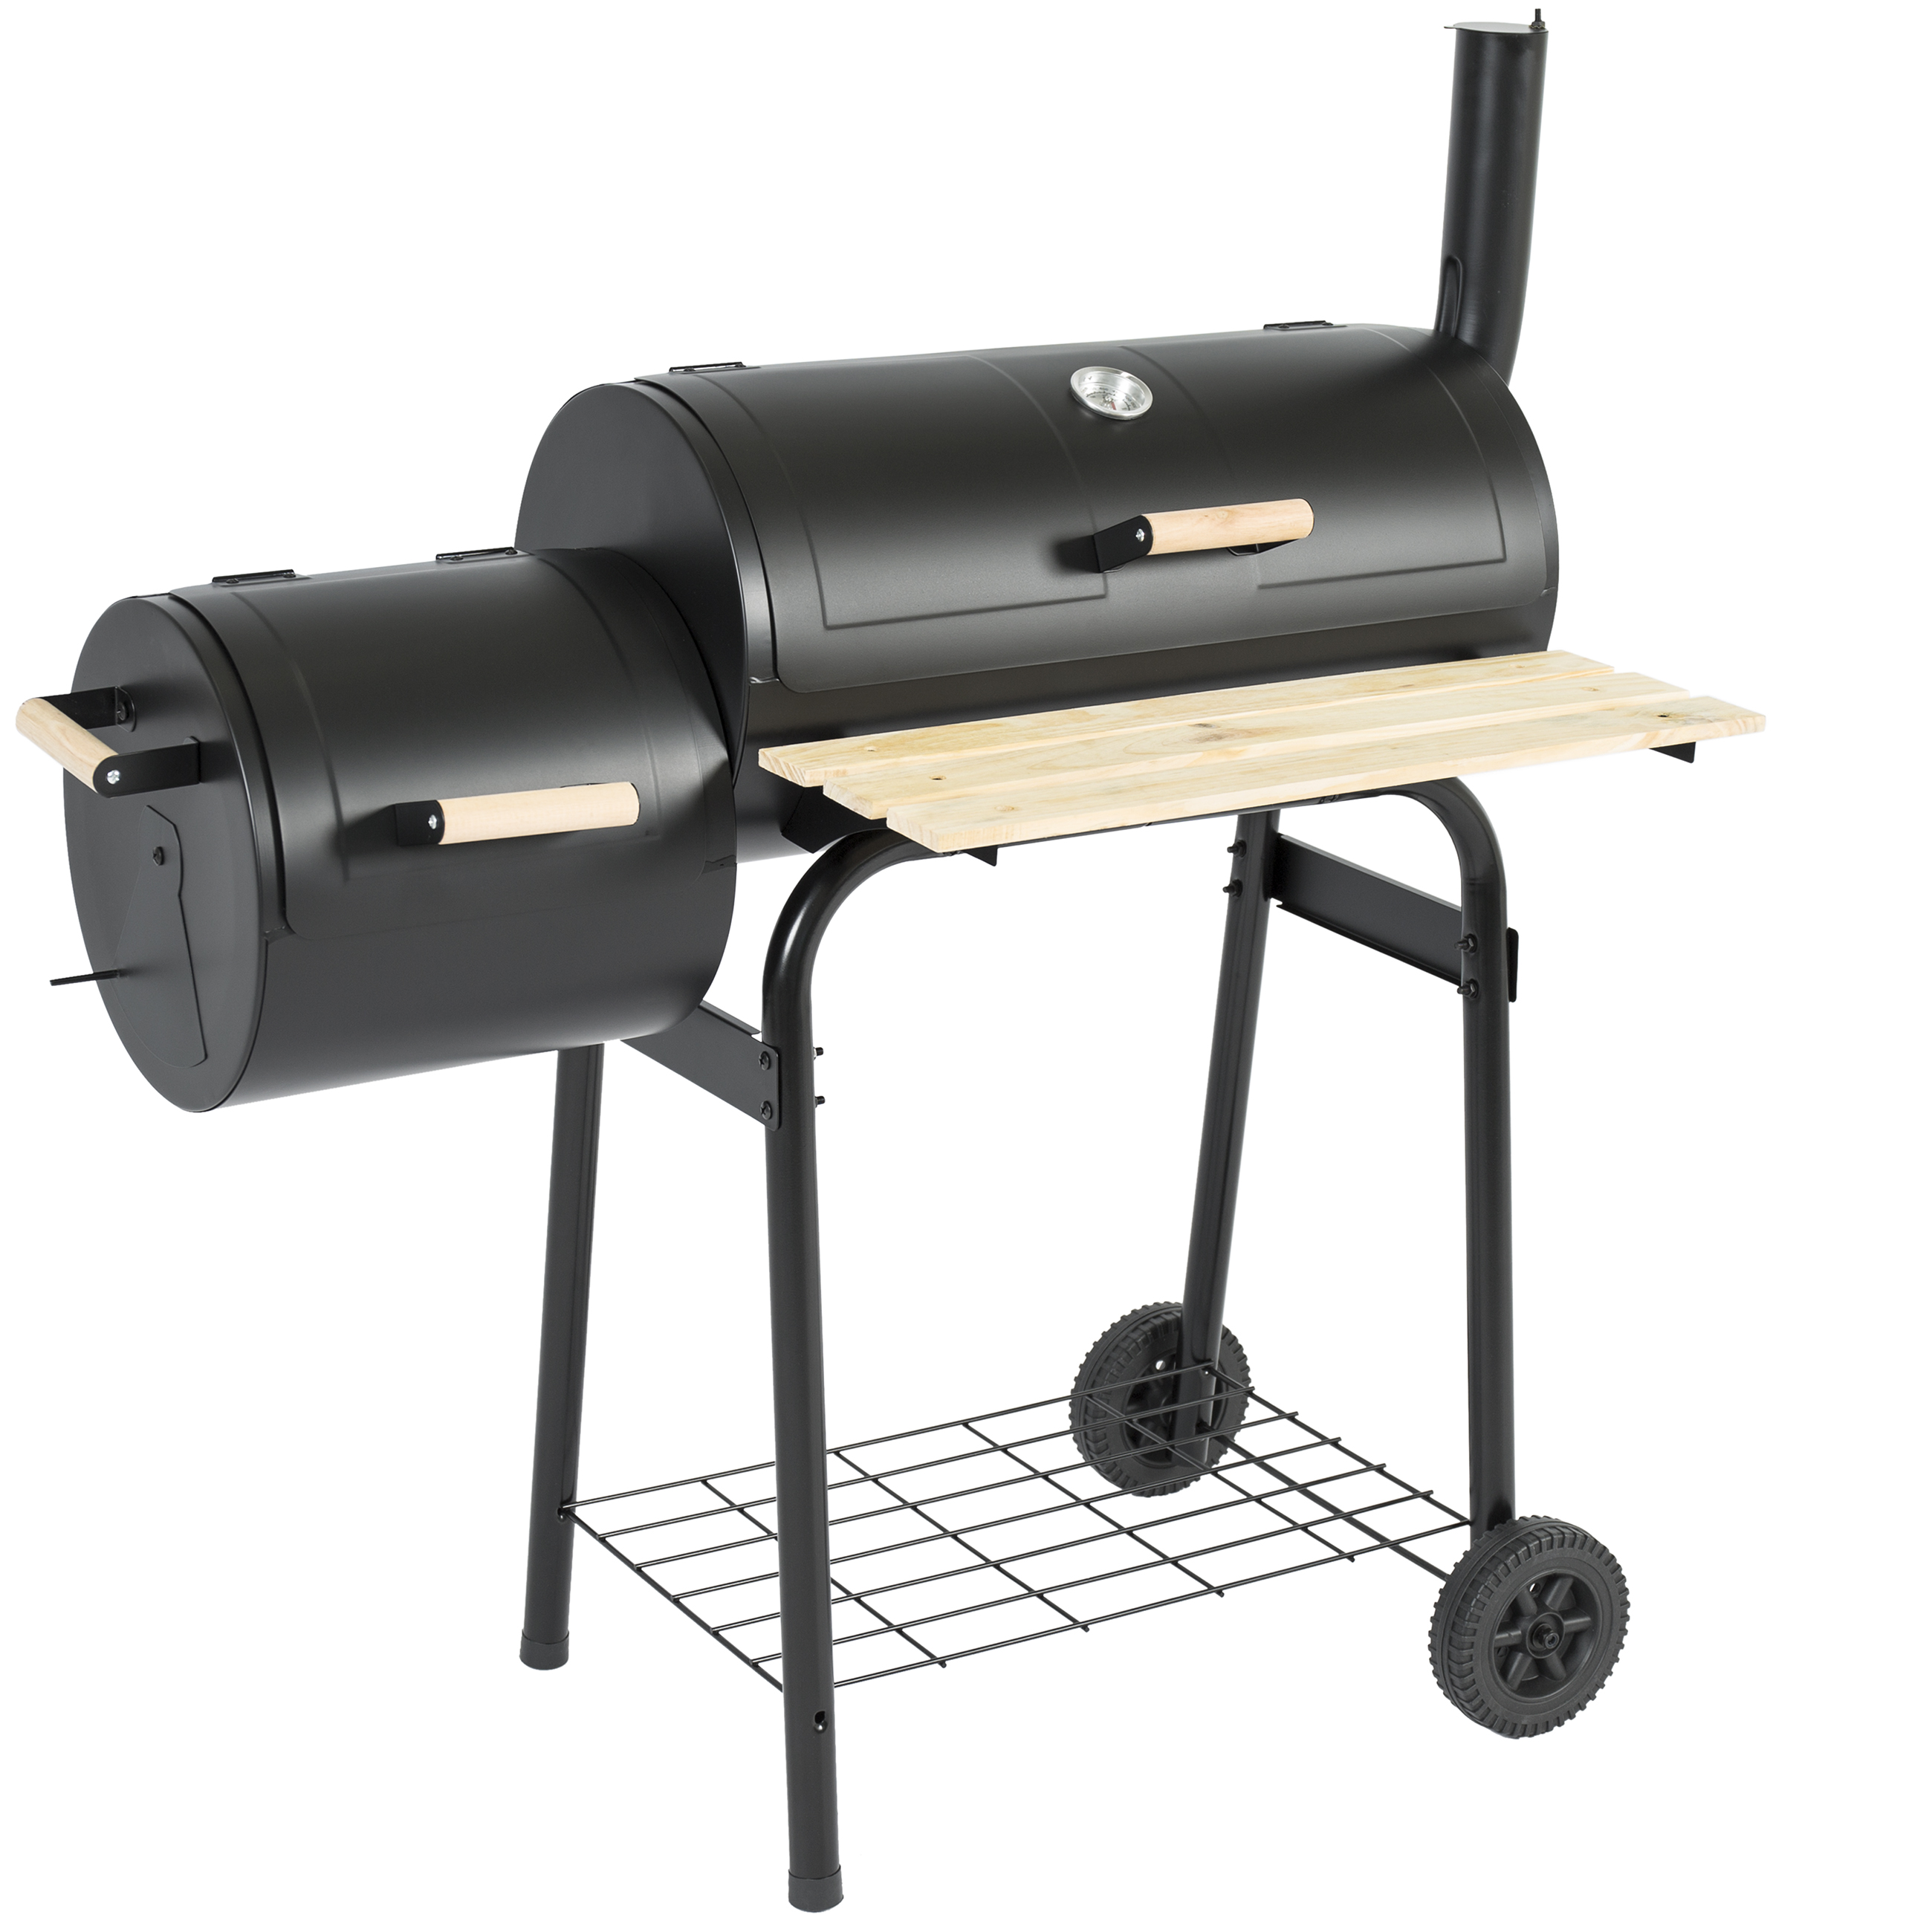 Best Choice Products BBQ Grill Charcoal Barbecue Patio Backyard Home Meat Smoker